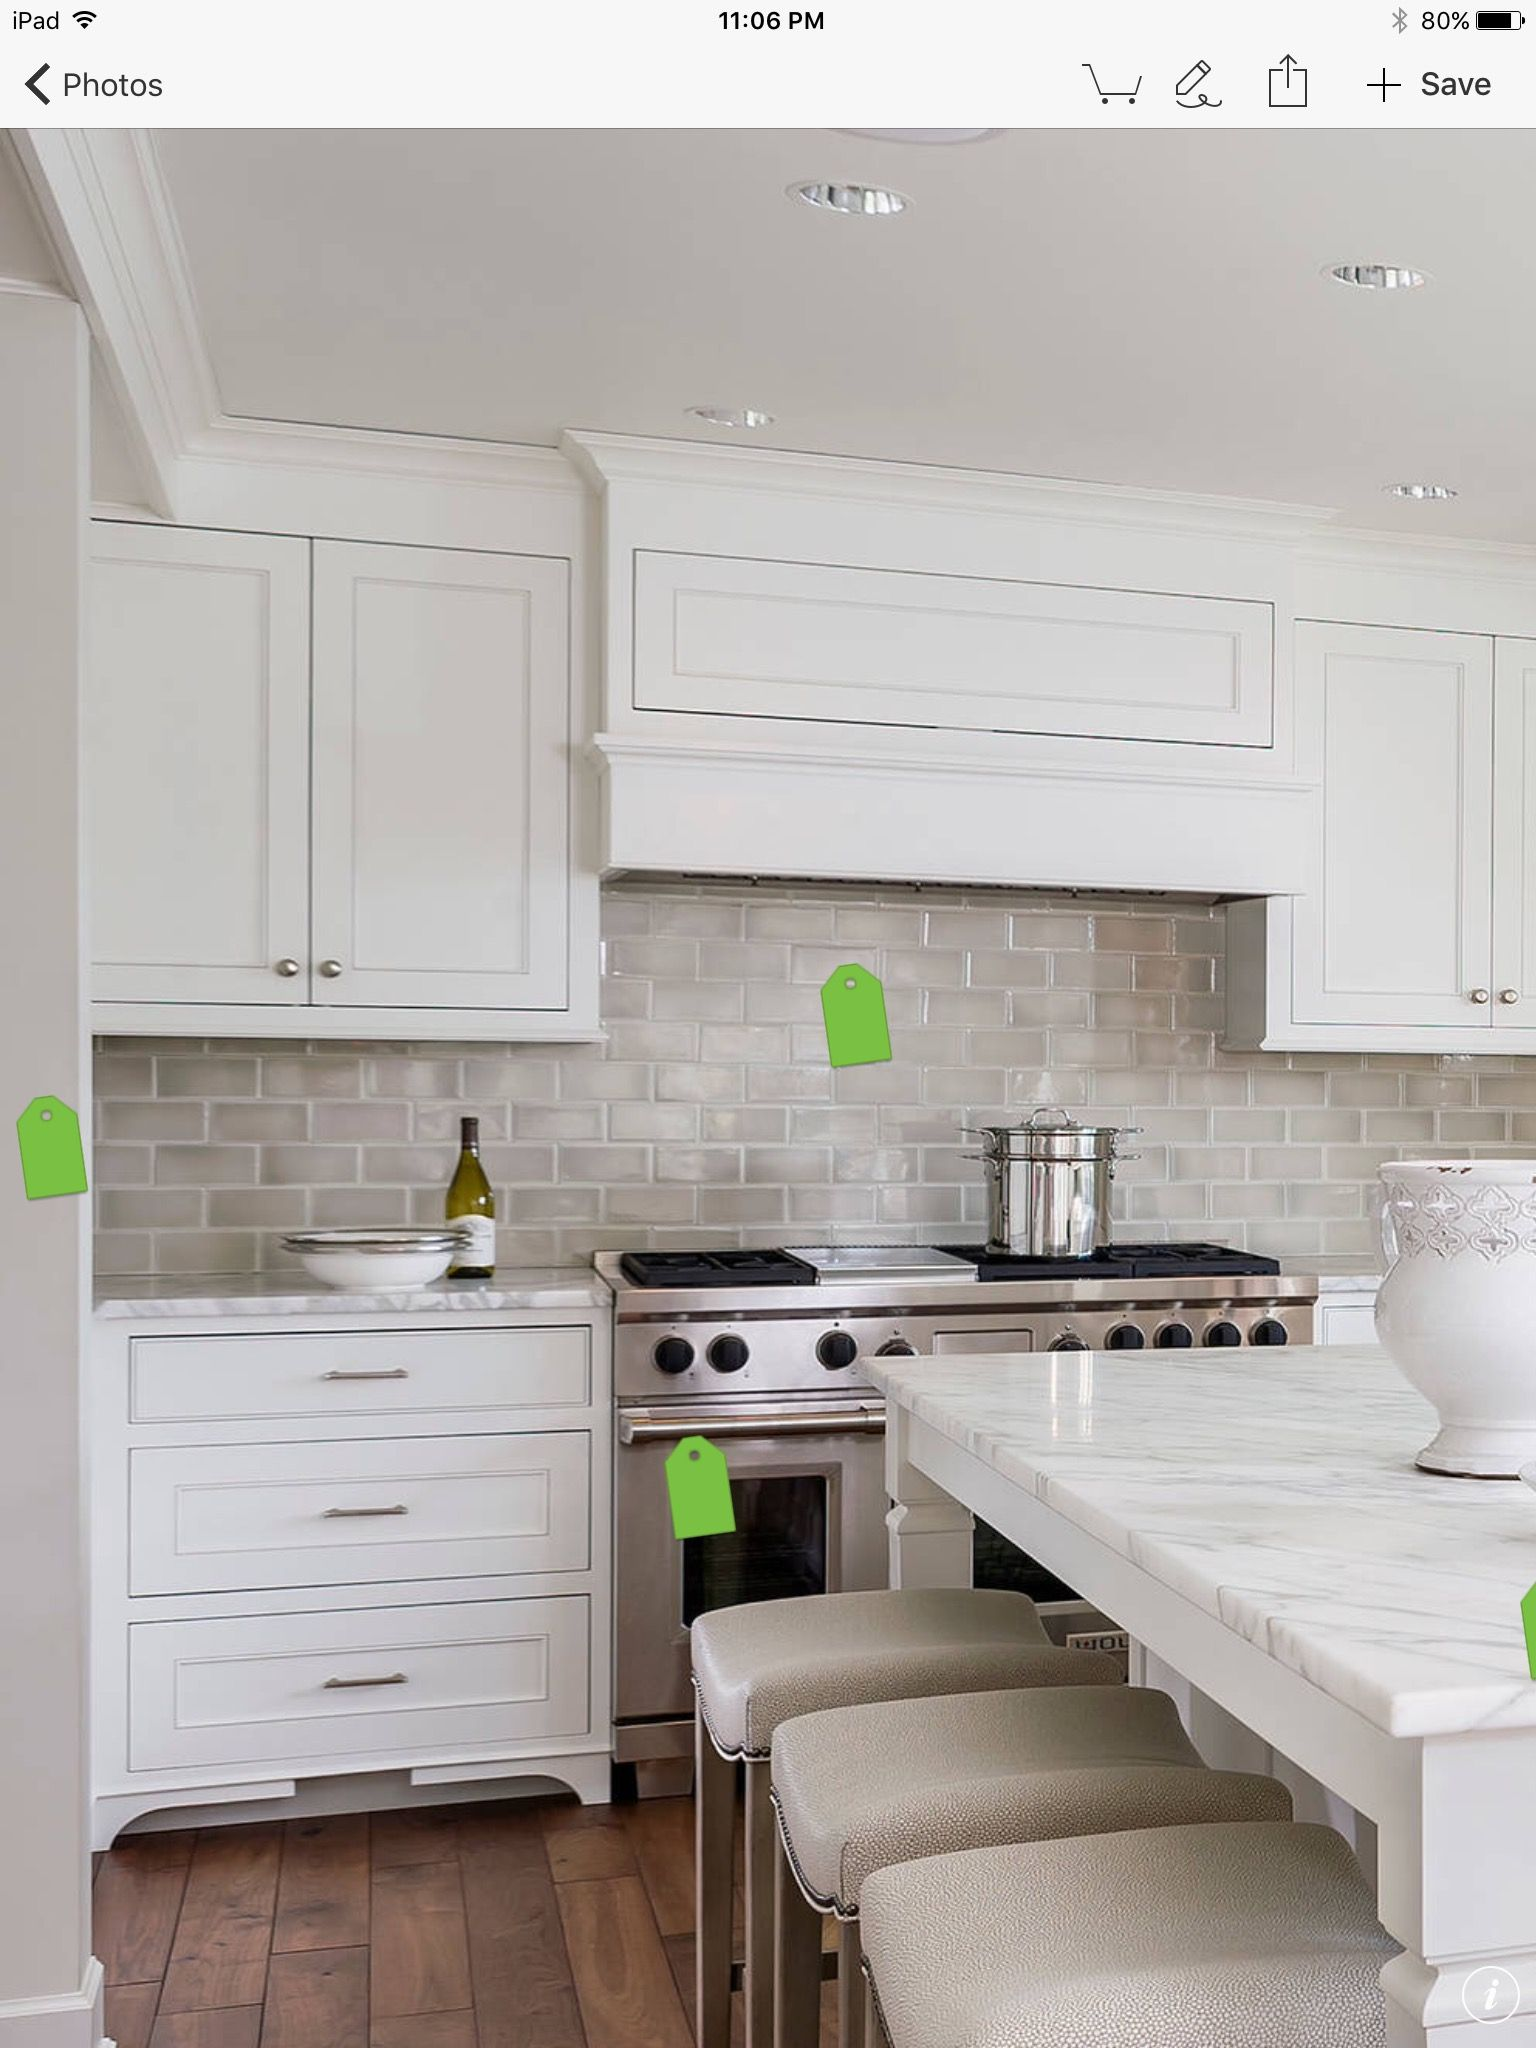 Pin By Jenny Diep On French Kitchen Renovations Used Kitchen Cabinets Kitchen Remodel Kitchen Inspirations